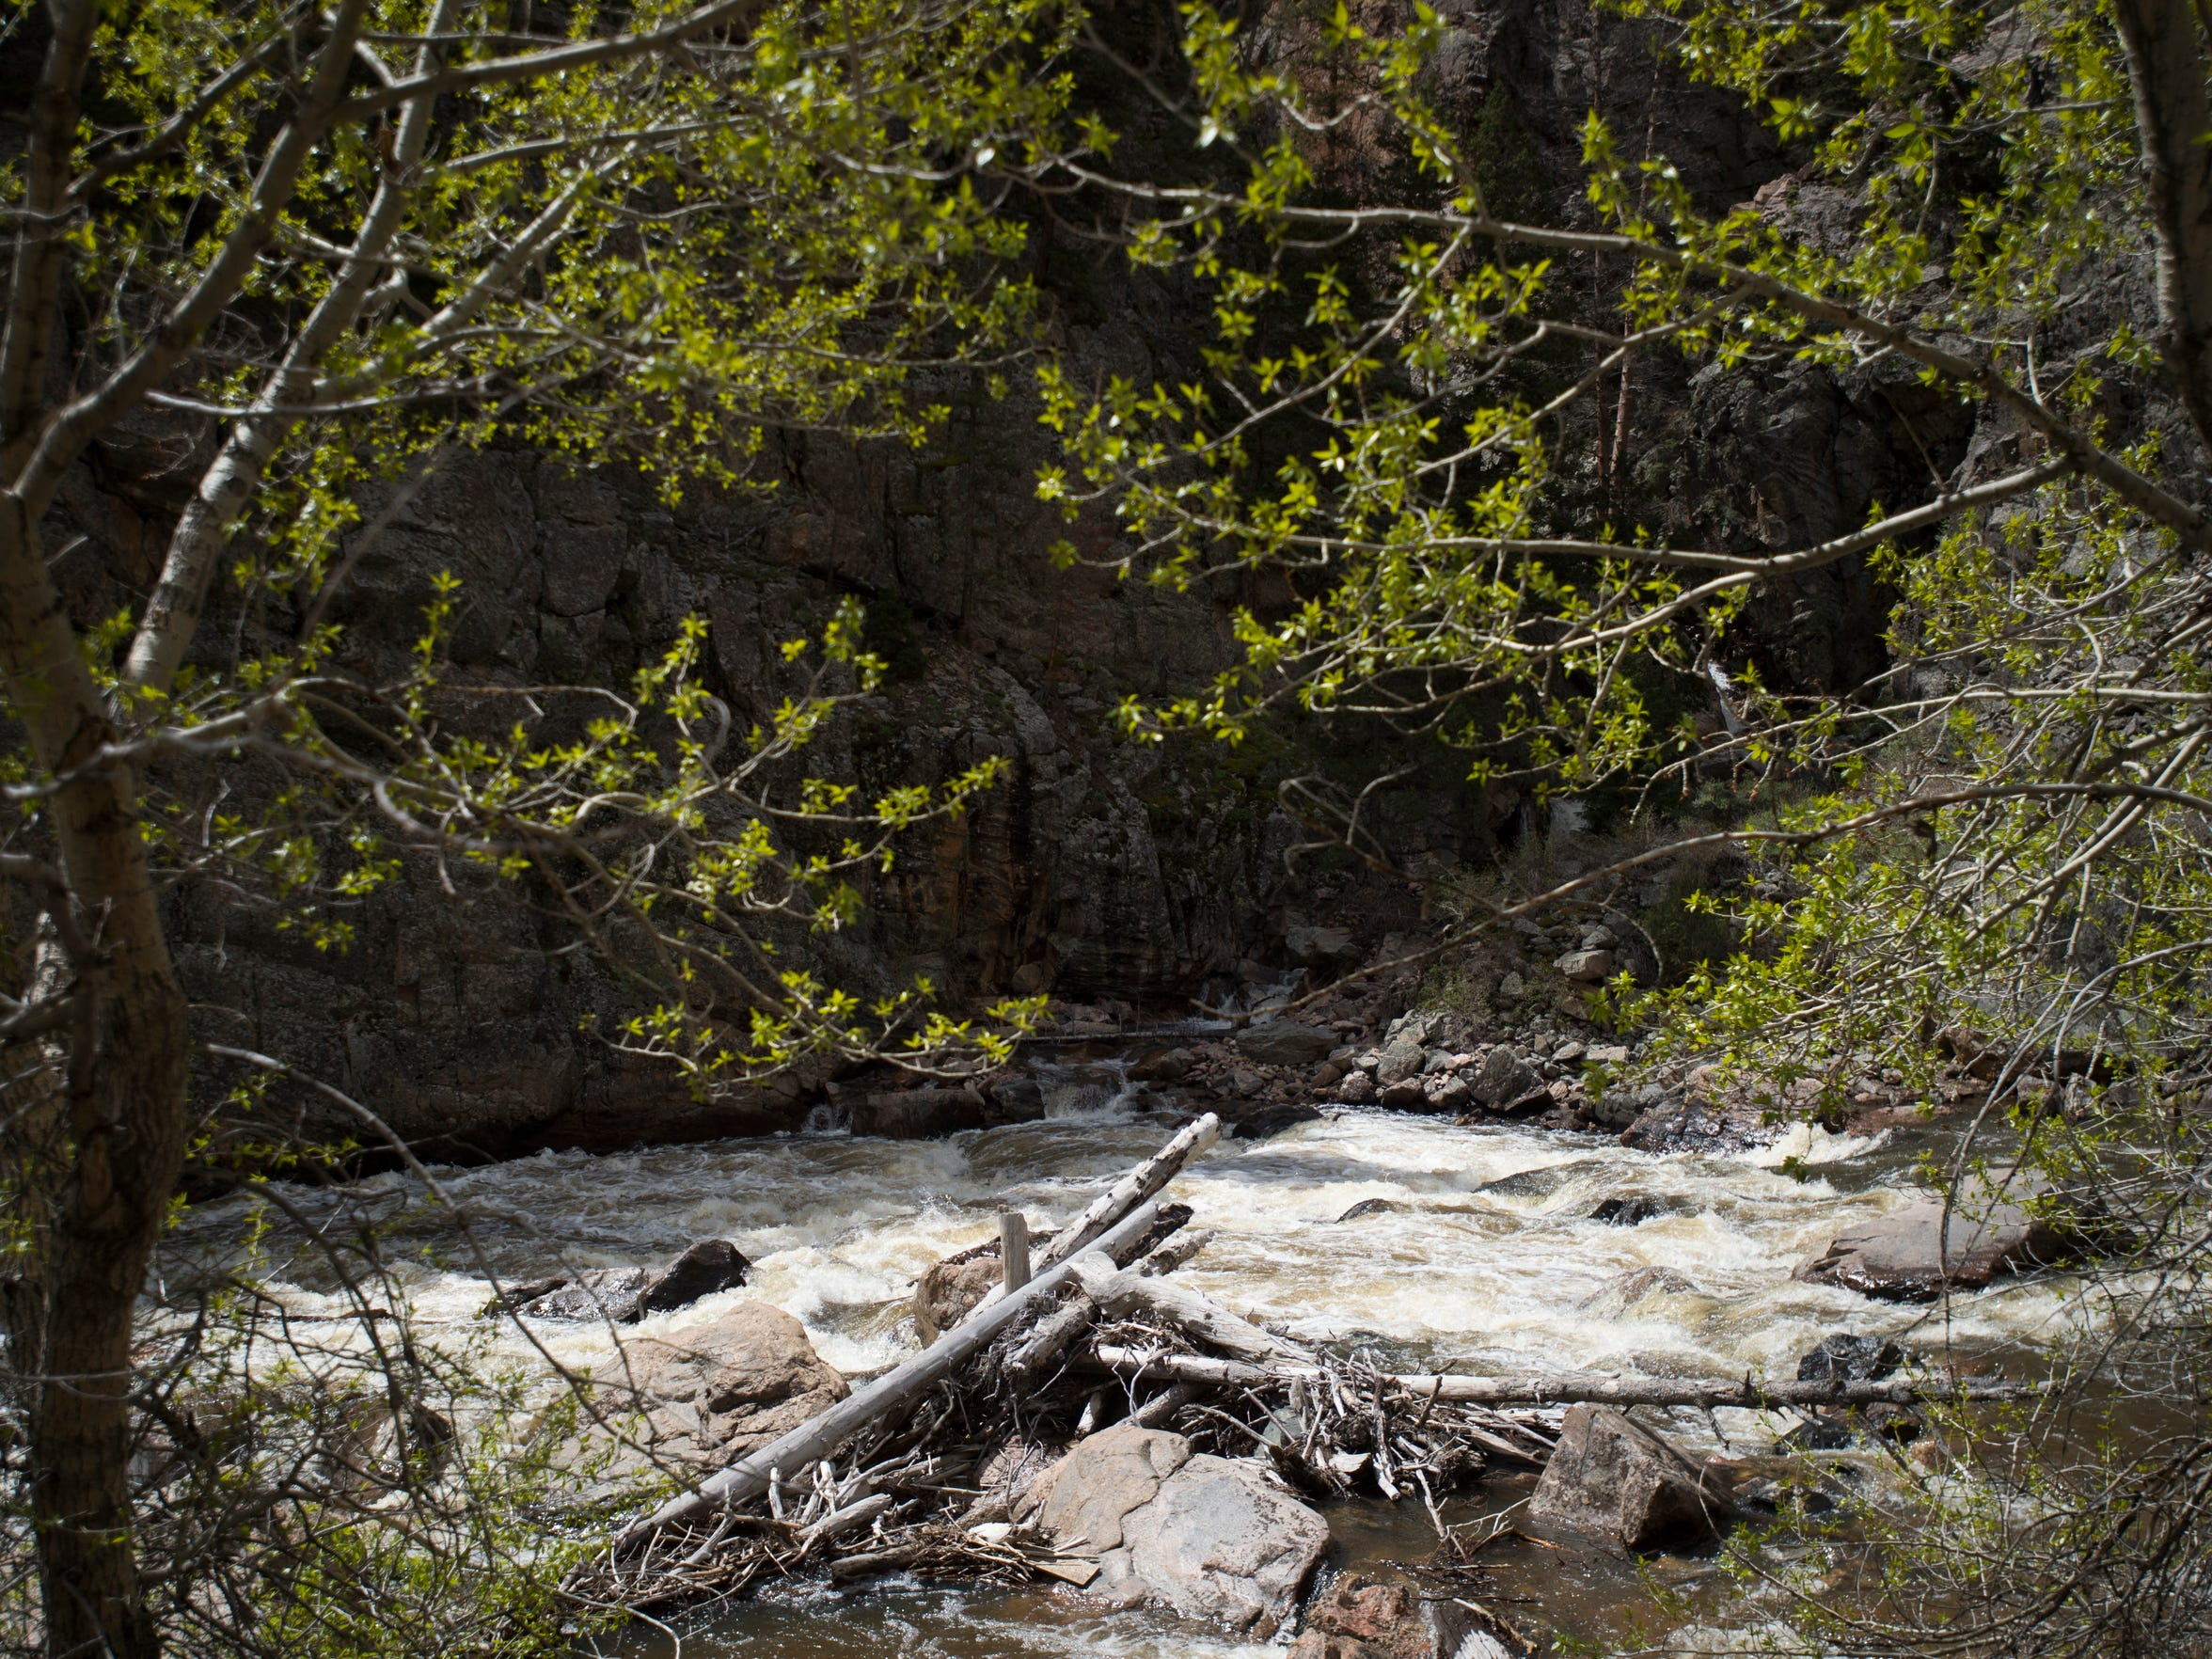 The Cache la Poudre River flows through Poudre Canyon Thursday, May 19, 2016.